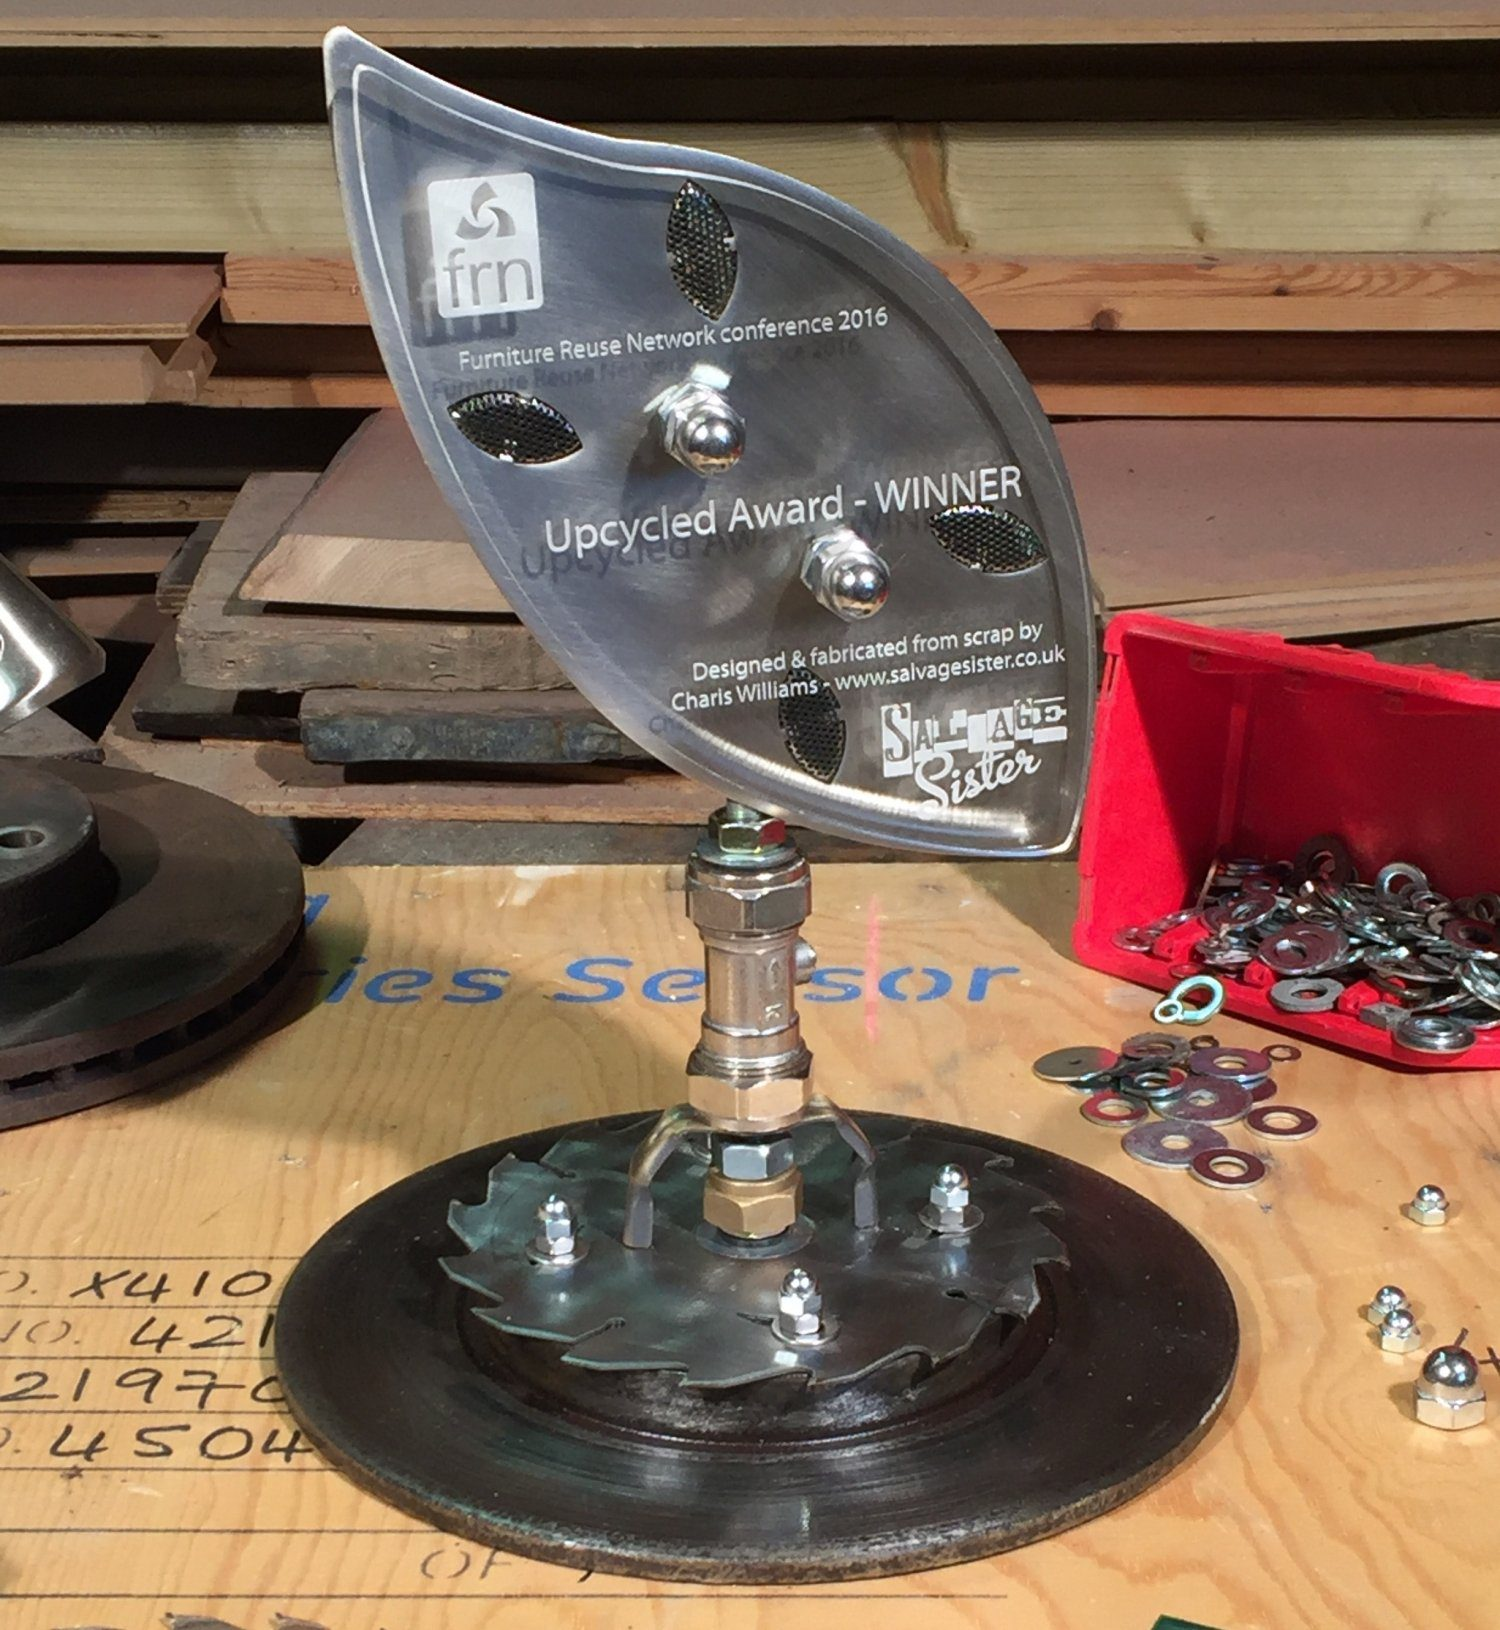 Upcycled metal trophy made from salvaged & reclaimed metal parts like fittings & circular saw blades